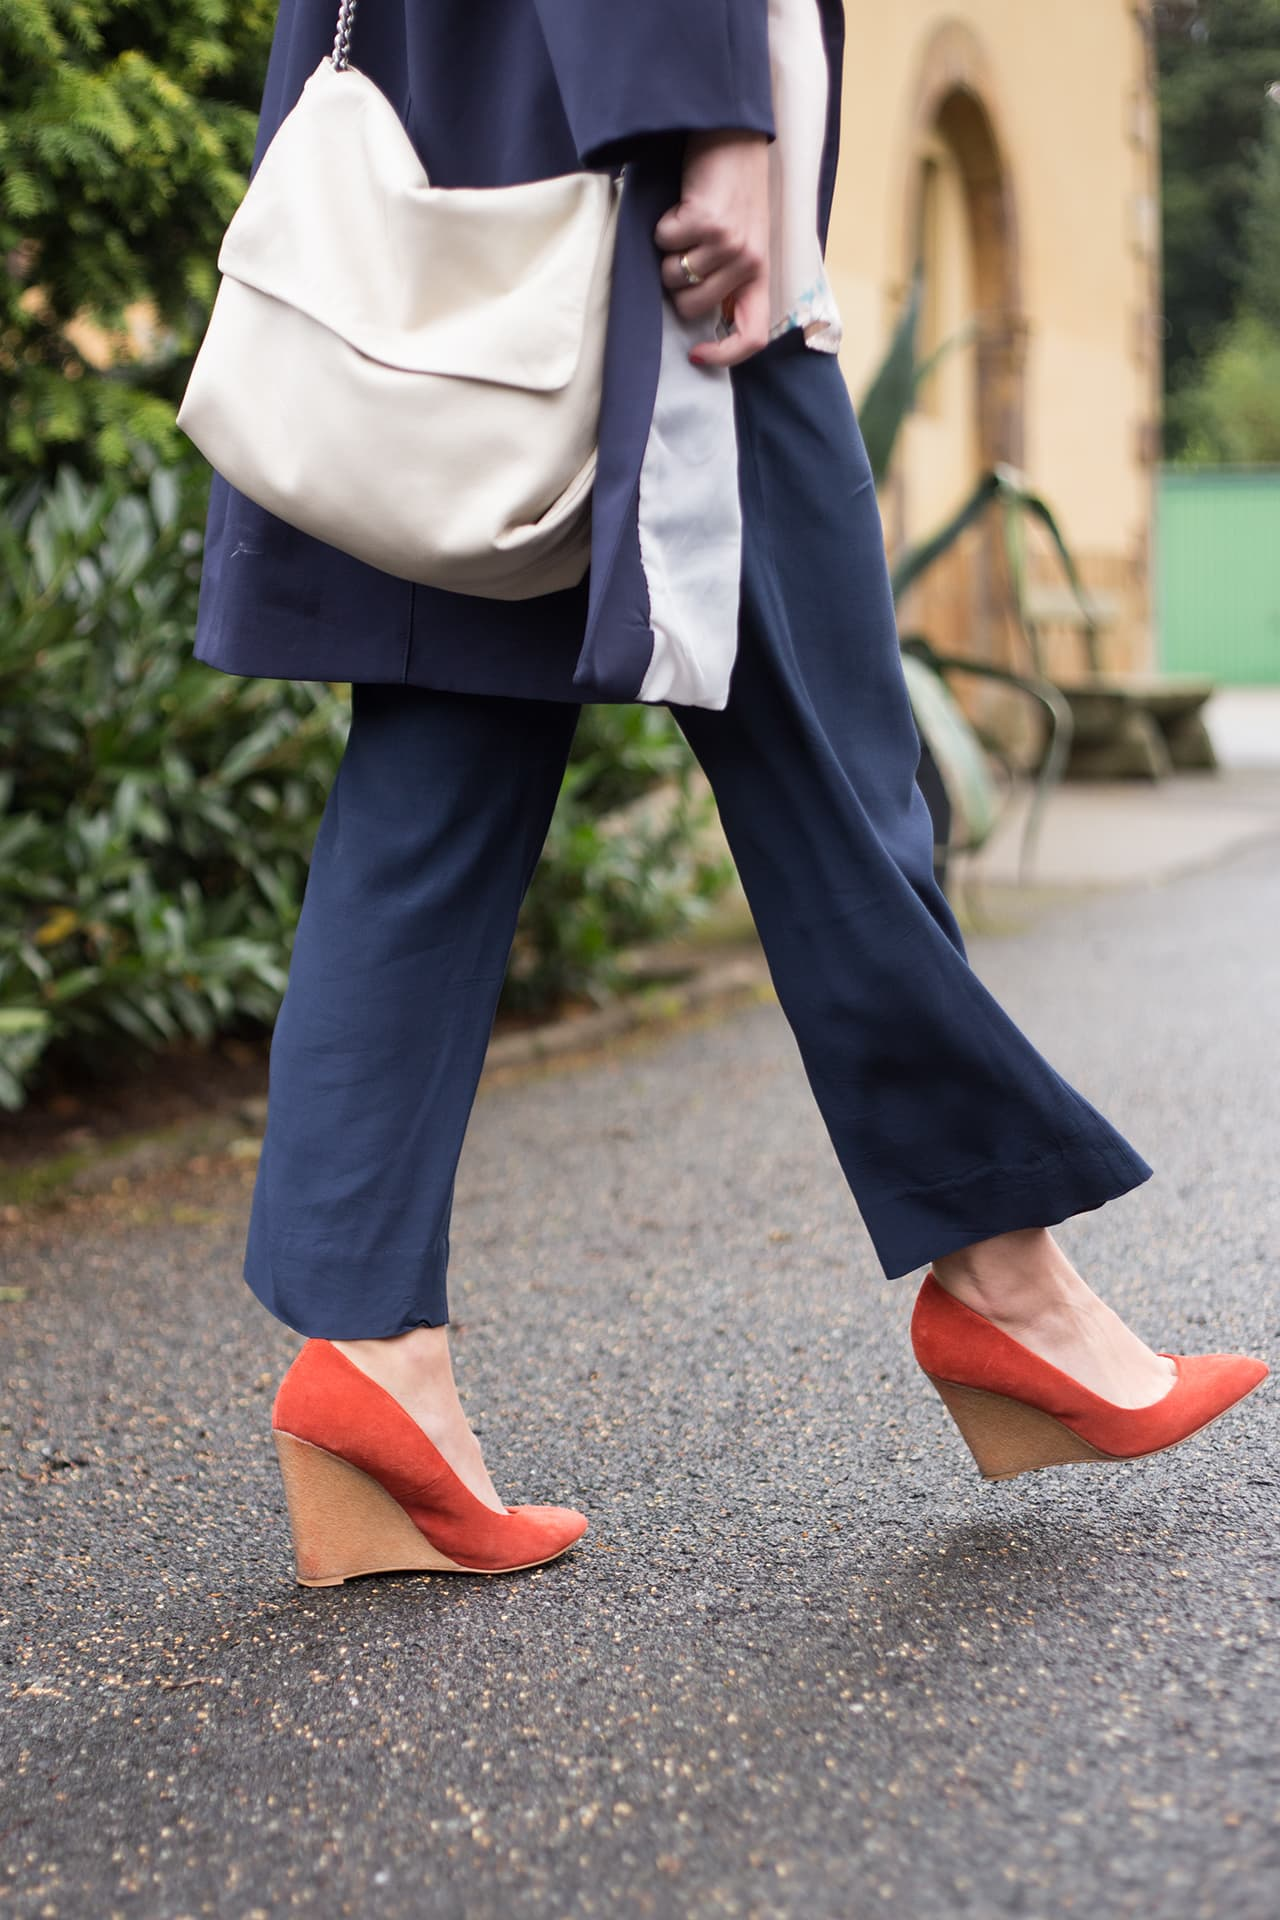 Luftig leichter Look aus Seide Wedges Pumps Zara